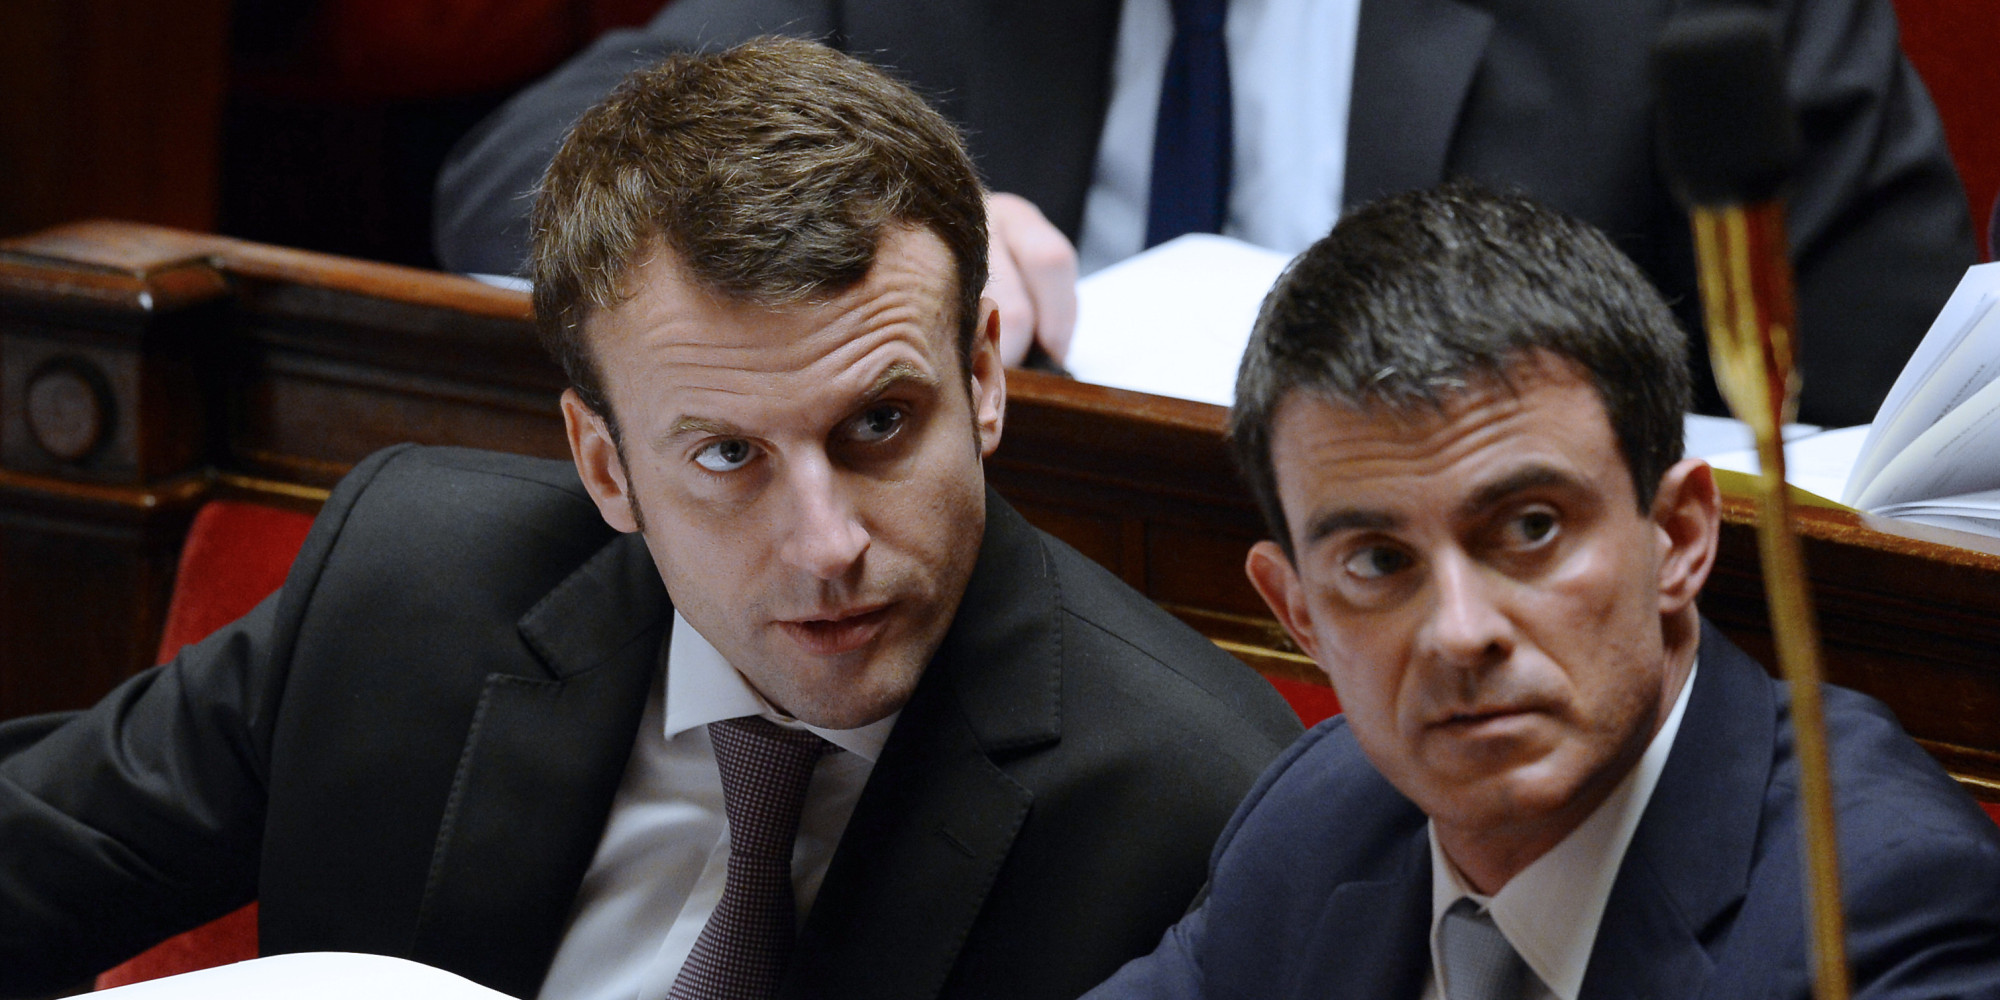 "French Economy and Industry Minister Emmanuel Macron (L) speaks with Prime minister Manuel Valls as they attend a working session on the Macron's law at the French National Assembly in Paris on February 14, 2015. Macron is trying to push through a controversial series of laws that he hopes will, in his words, ""unblock"" France's economy, which is suffering from high unemployment and sluggish growth. These include a proposal to allow shops to open on up to 12 Sundays a year instead of the current five.  AFP PHOTO / ALAIN JOCARD"